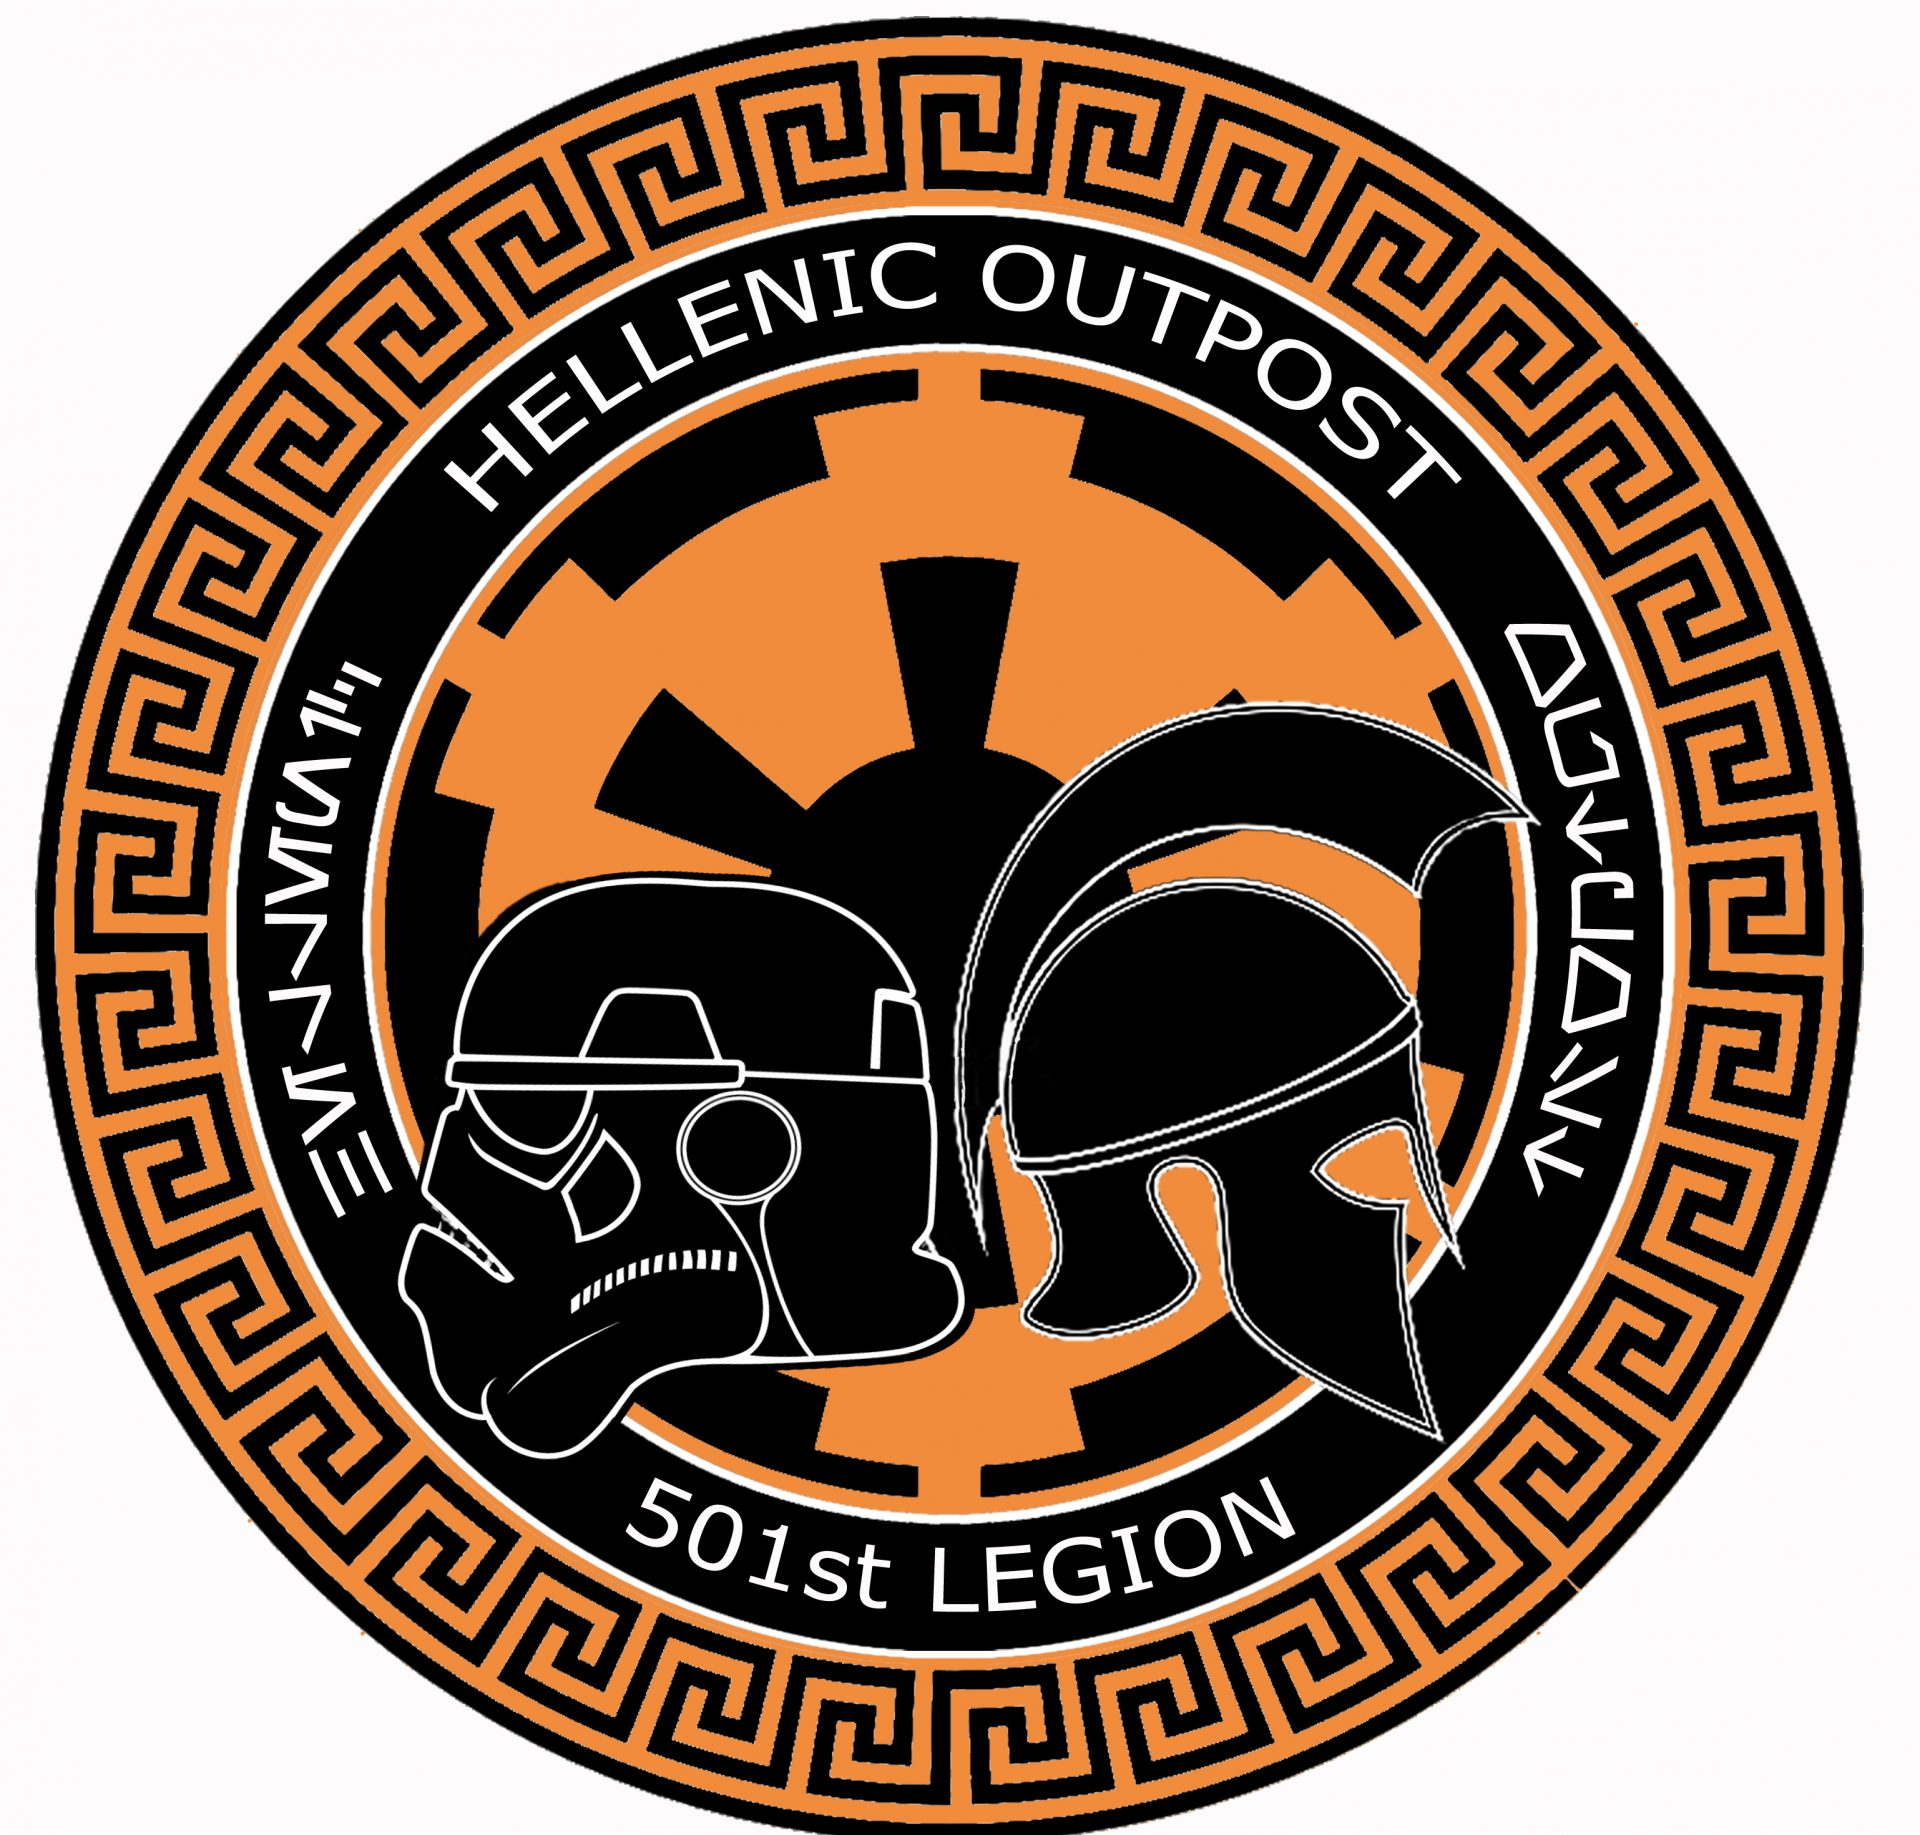 501st Hellenic Outpost